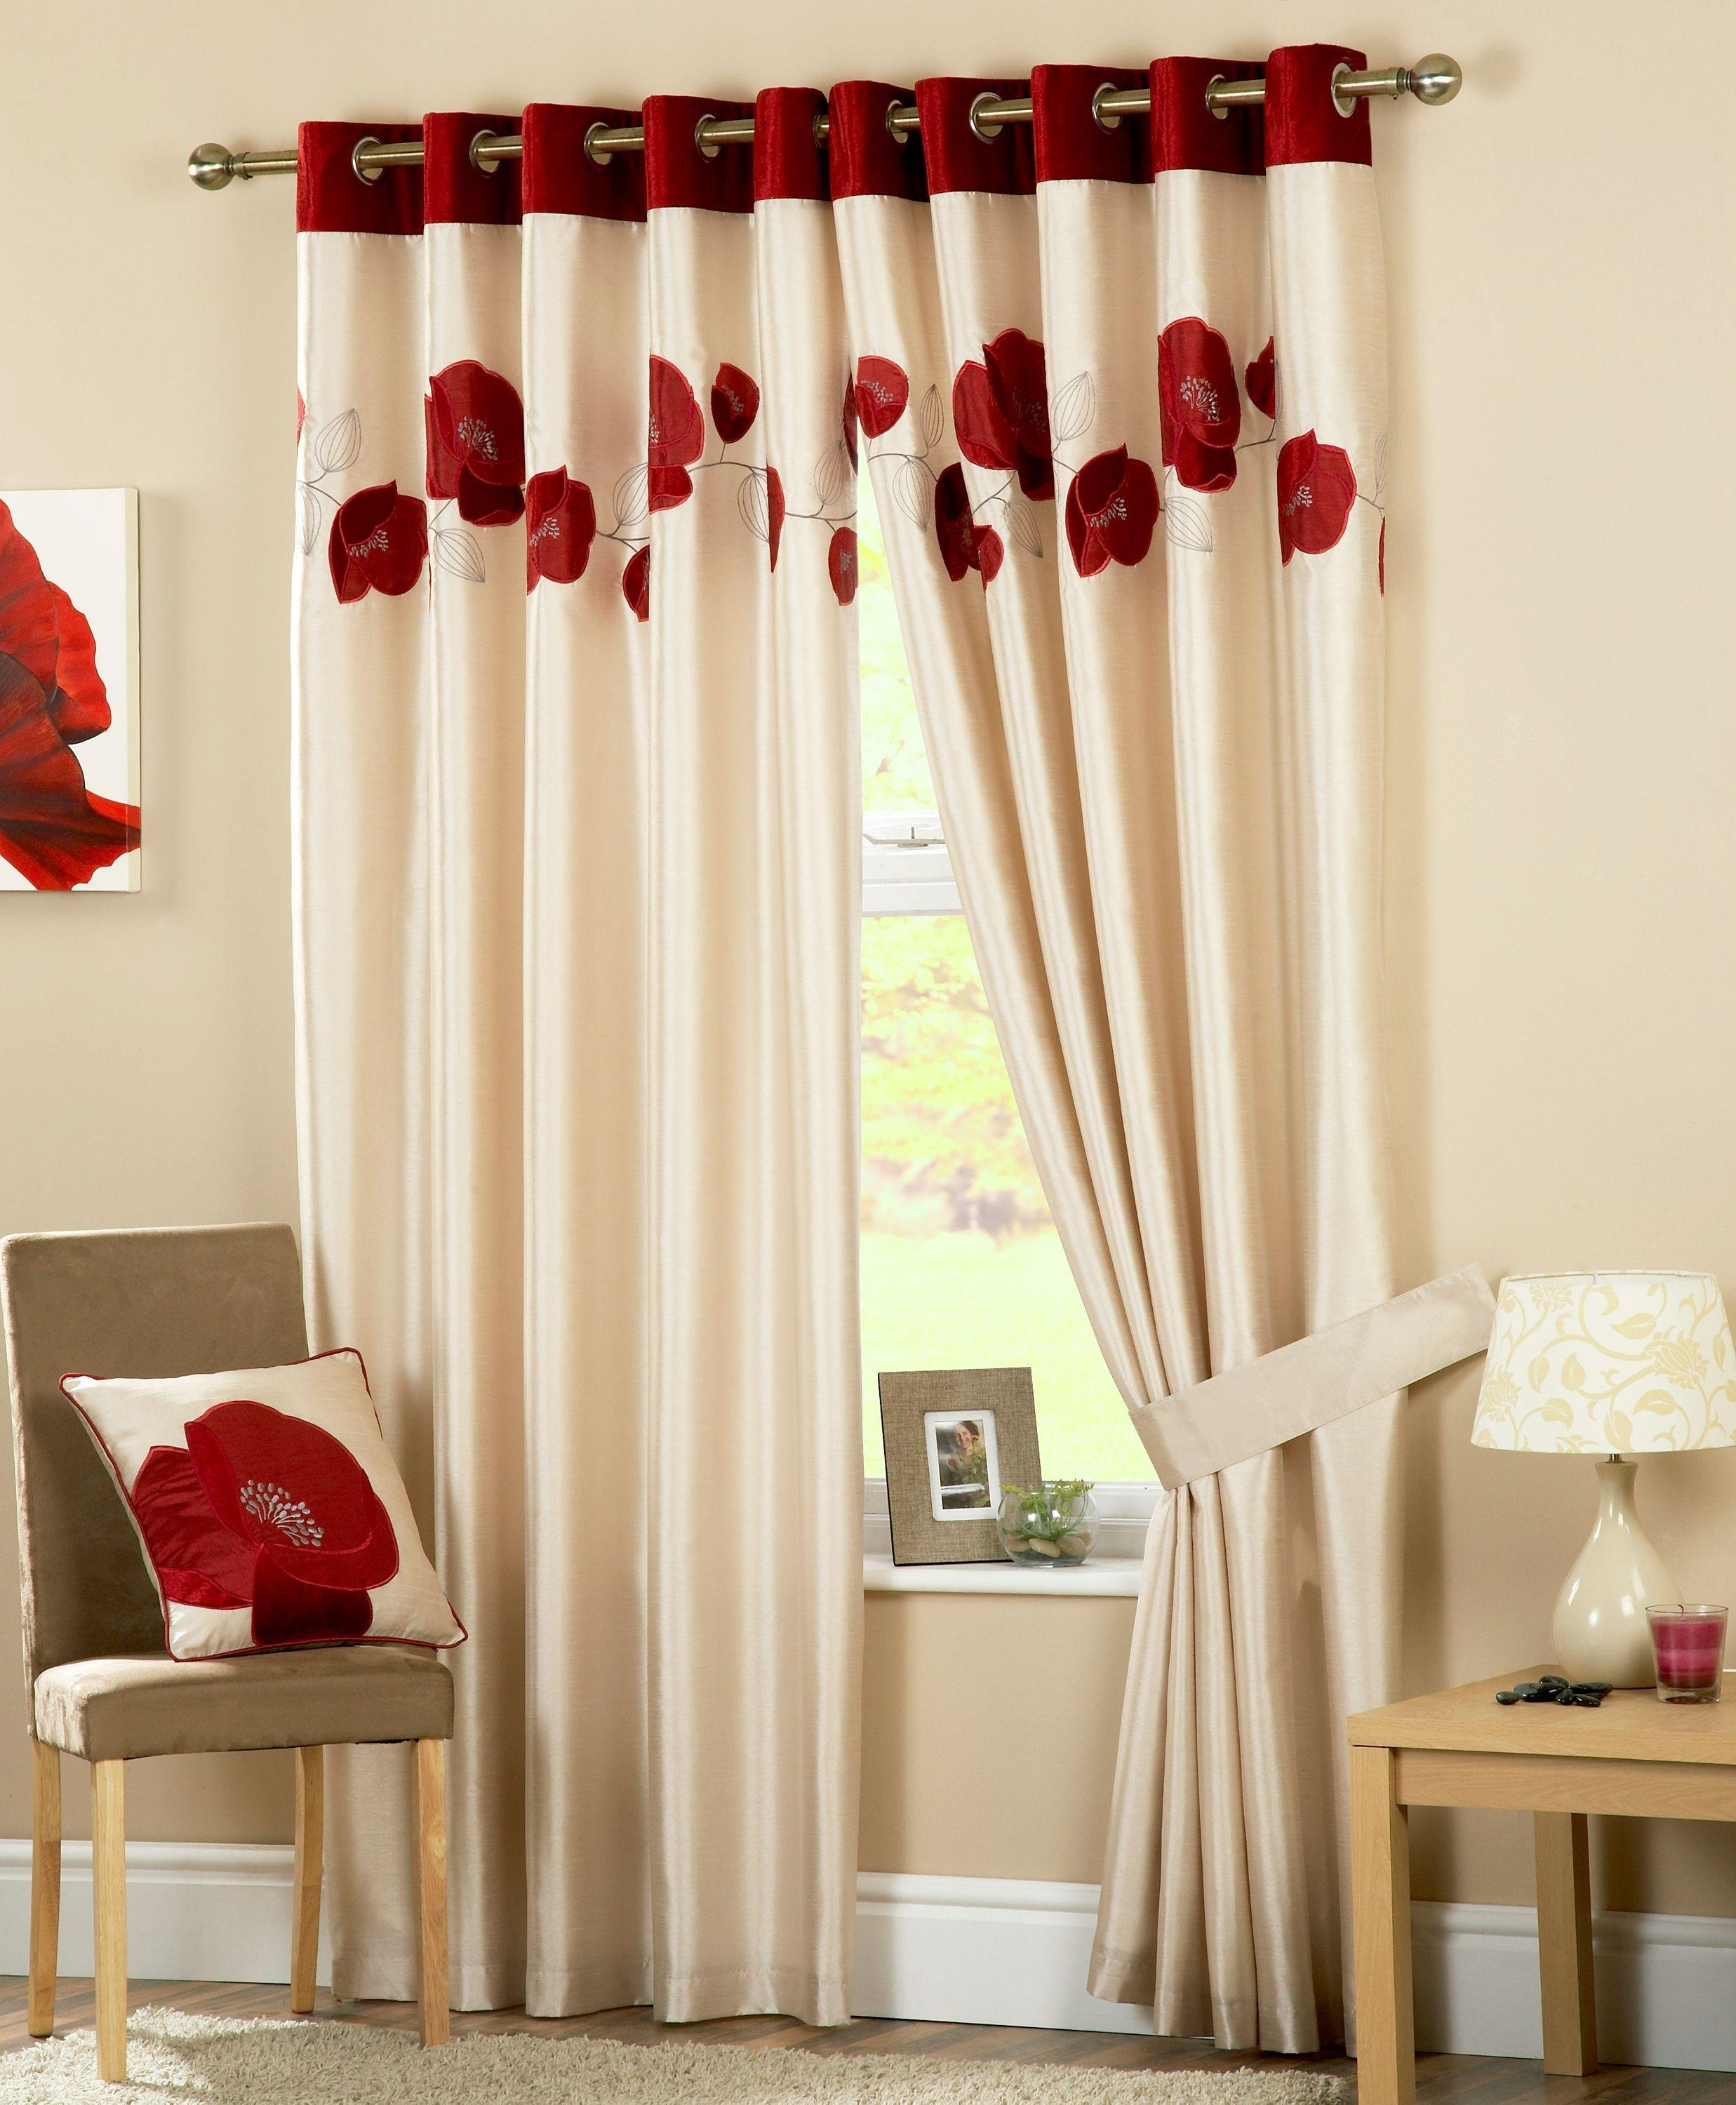 curtina-danielle-lined-eyelet-curtains-168x229cm-red